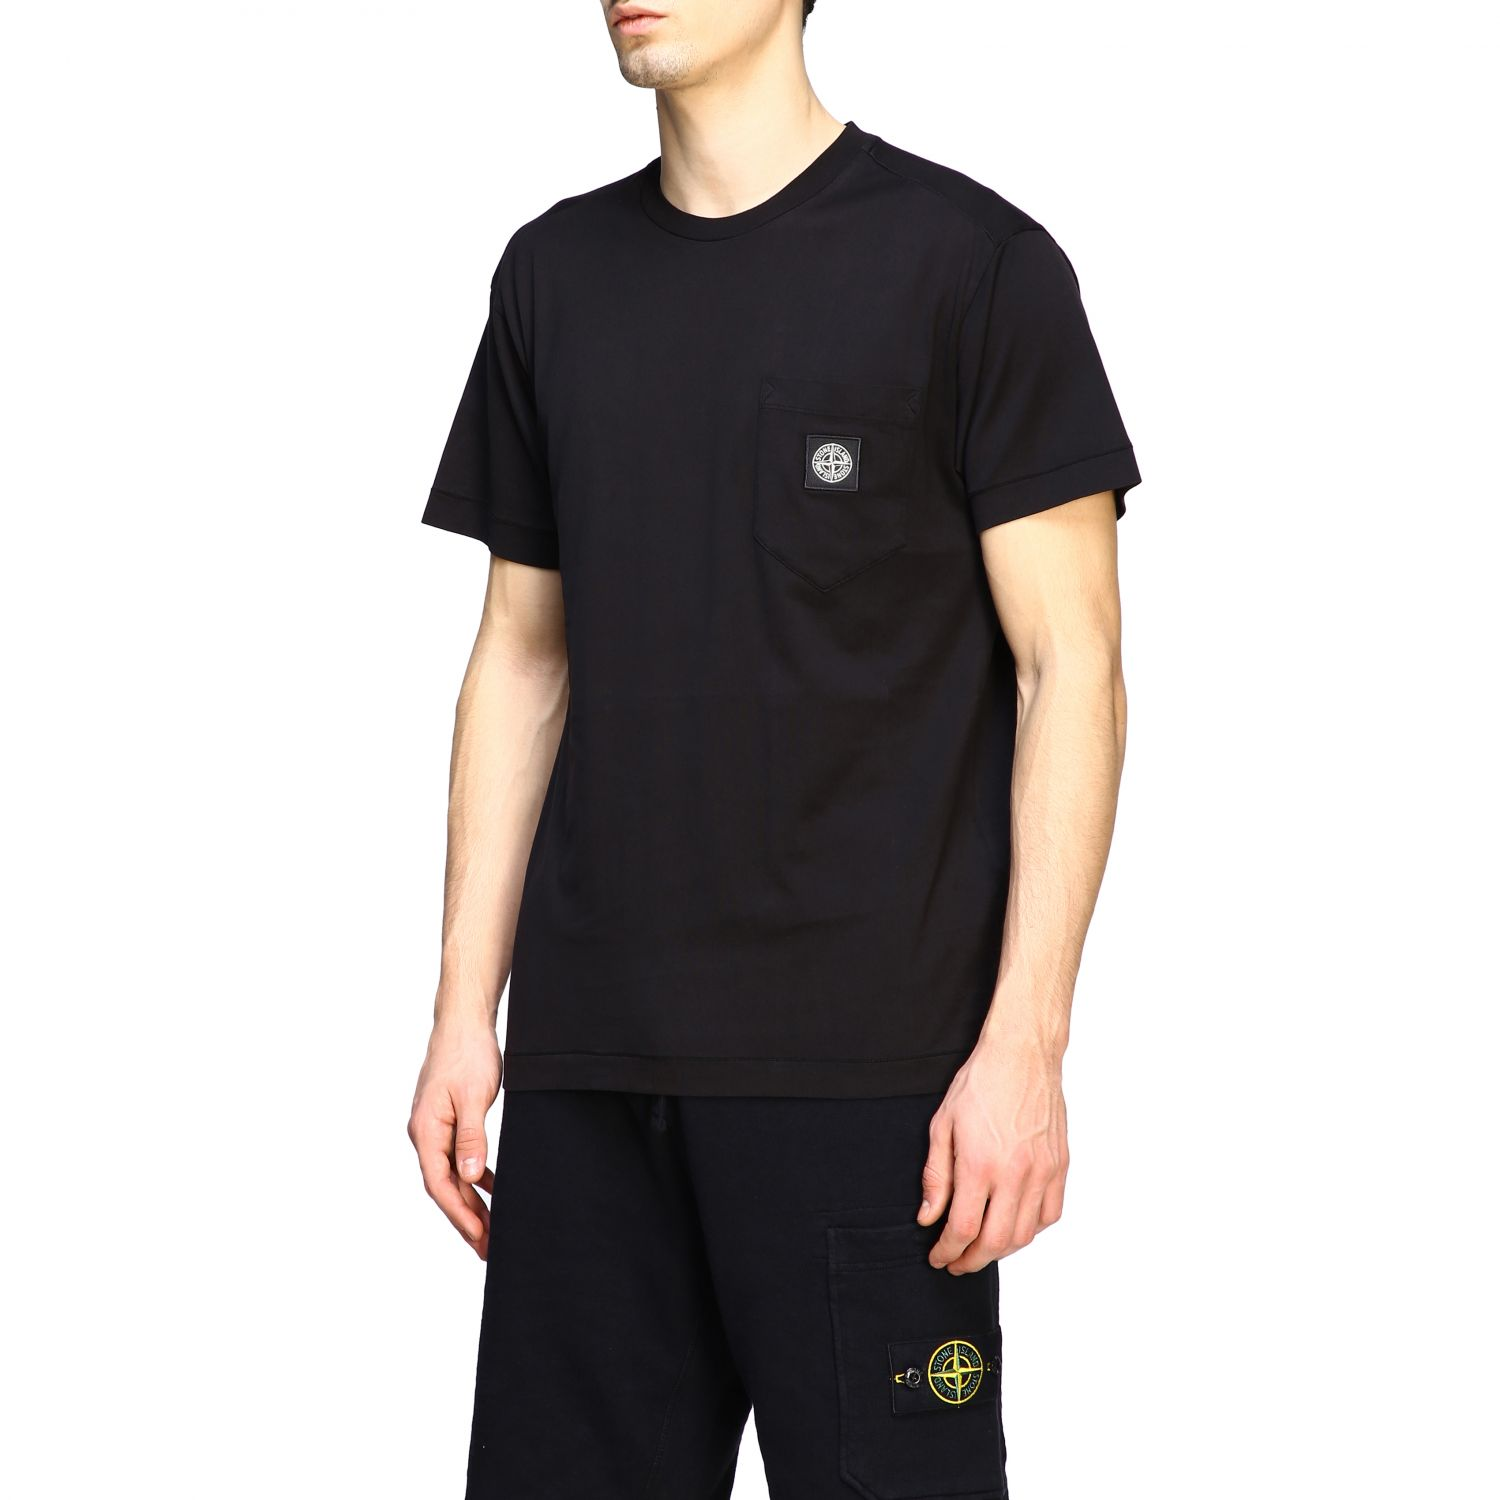 T-shirt men Stone Island black 4